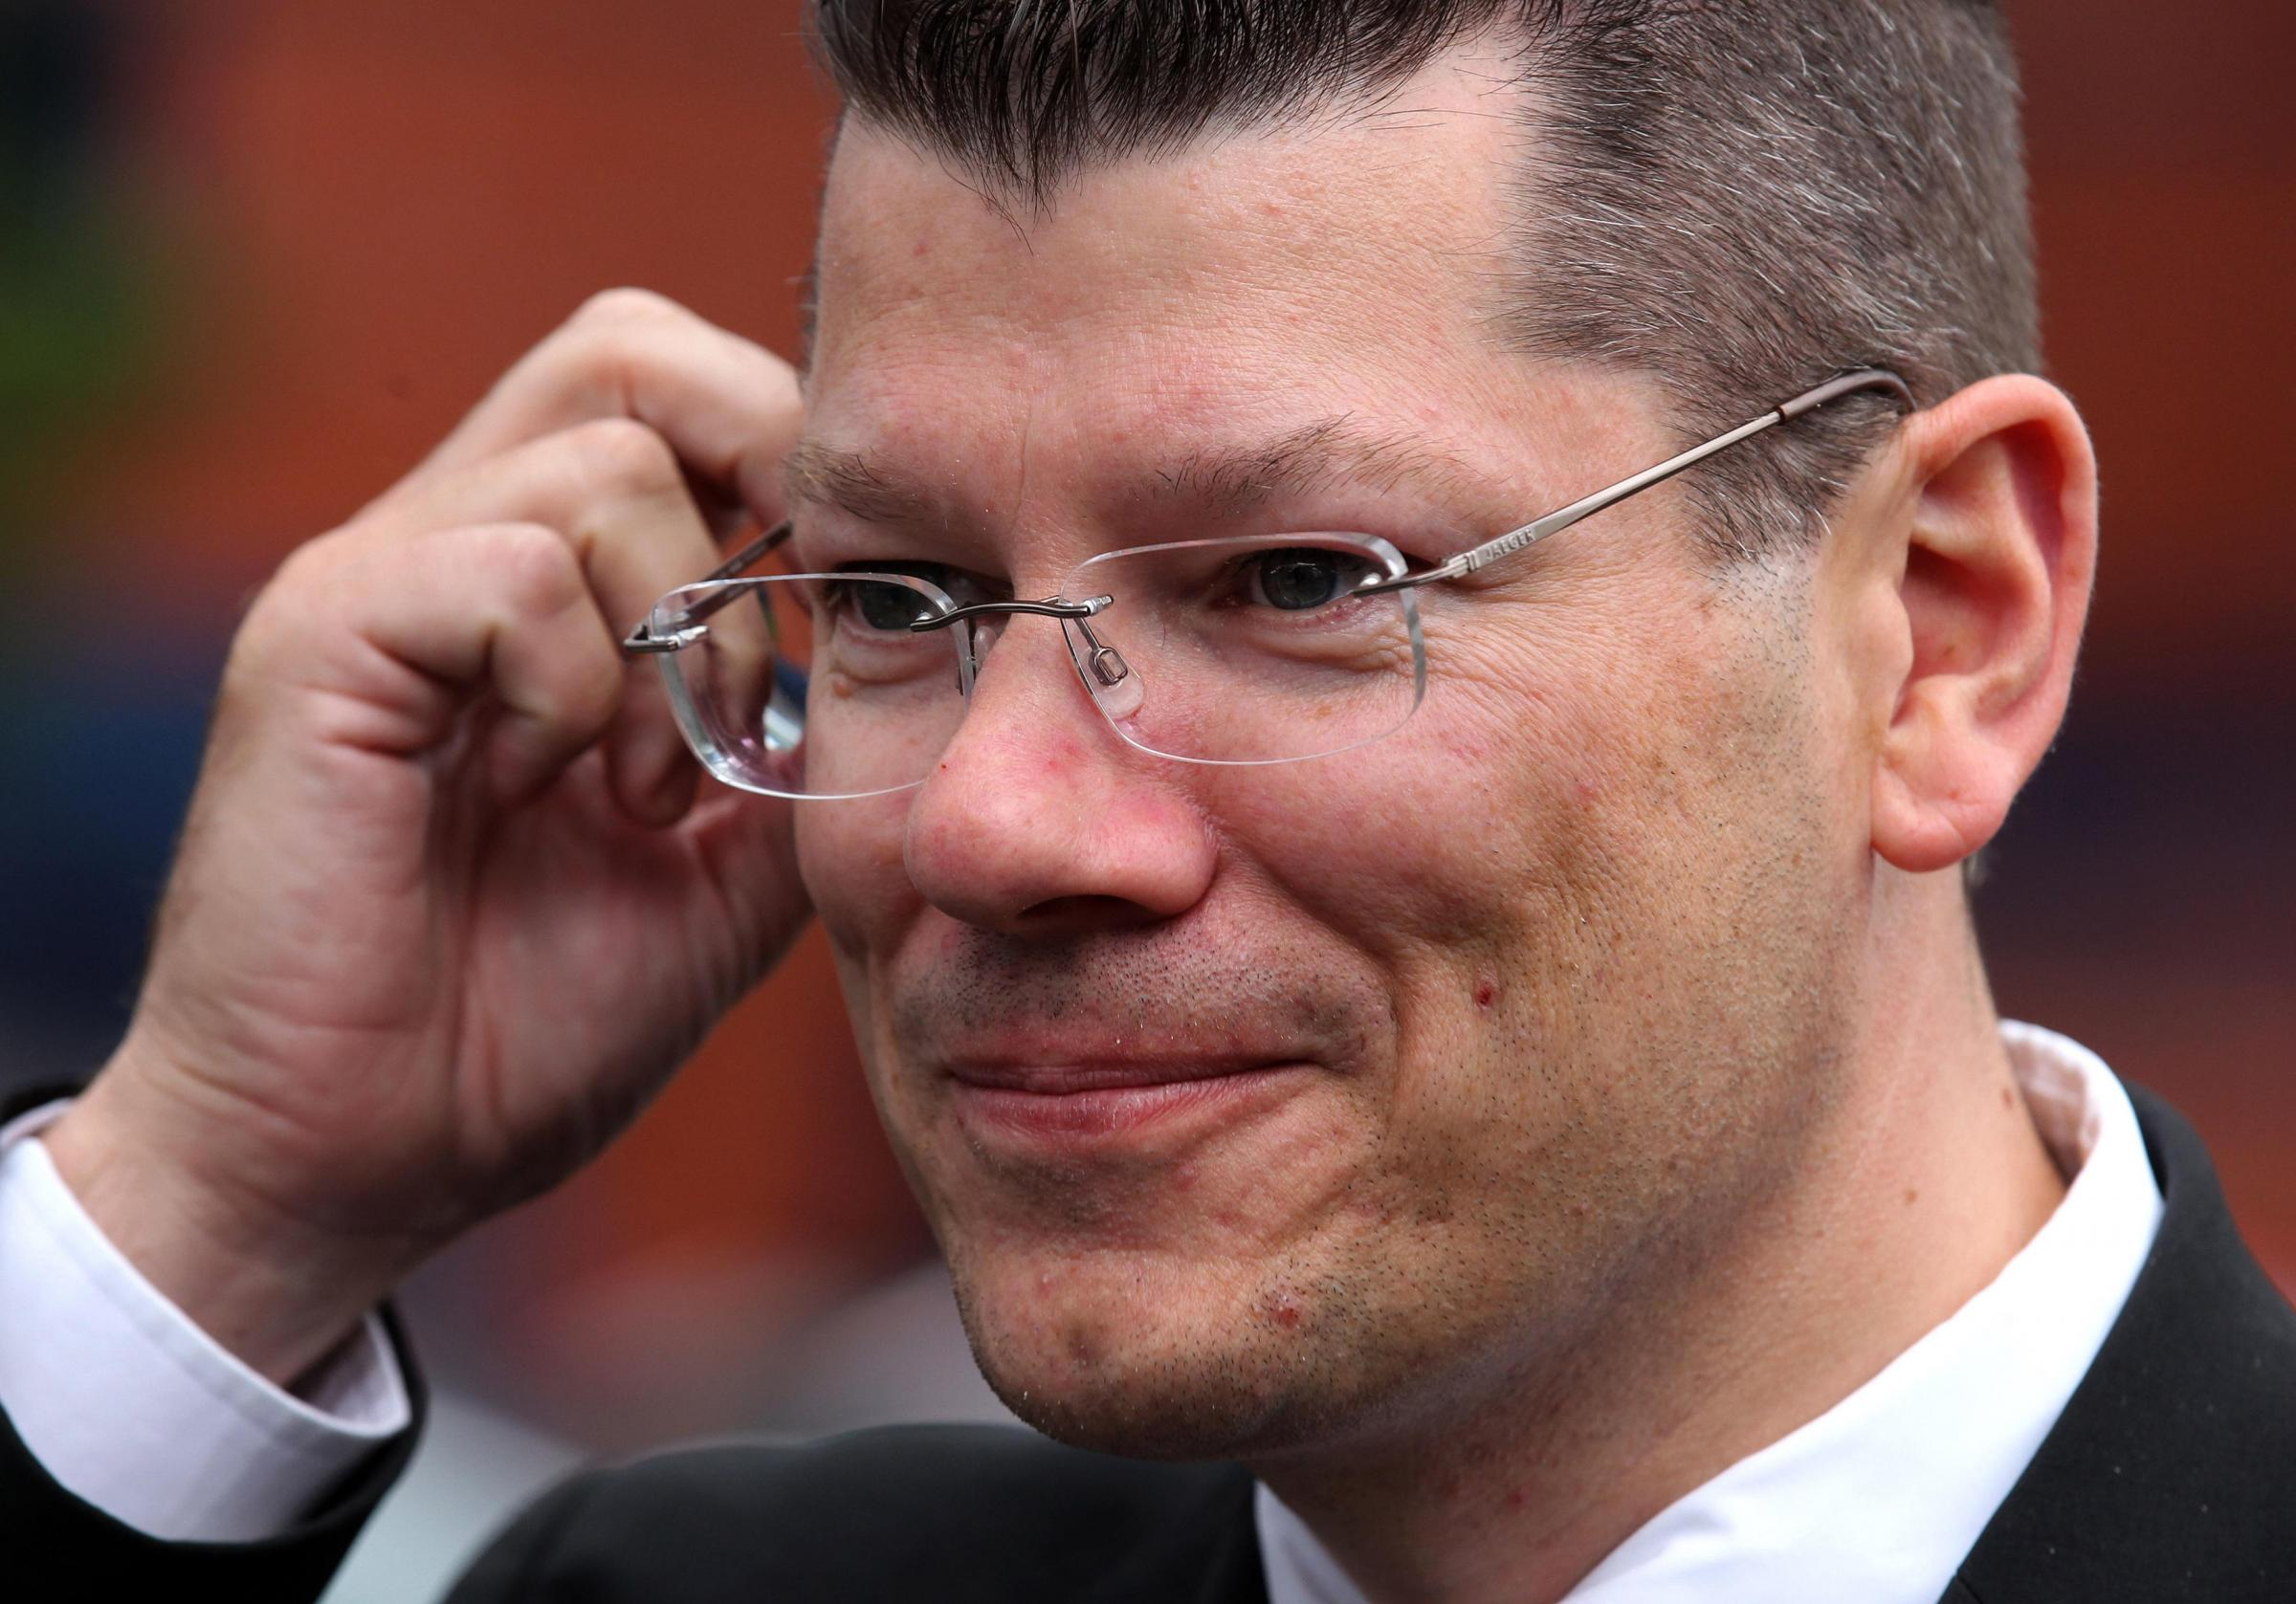 SPFL chief executive Neil Doncaster on bullying, Rangers' offer to fund inquiry and the Ibrox dossier